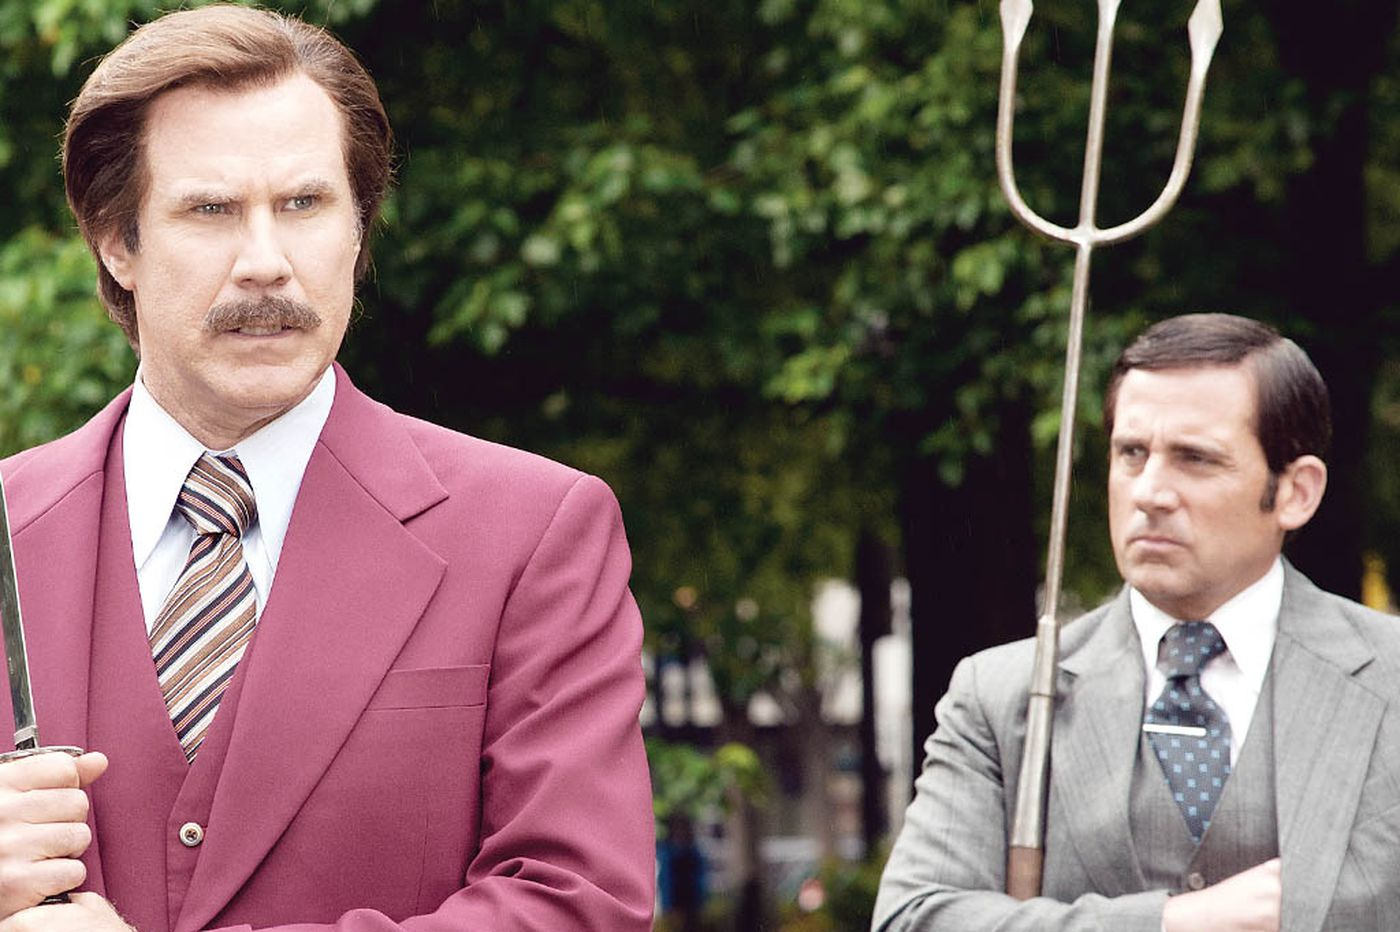 More goofball laughs in 'Anchorman 2'